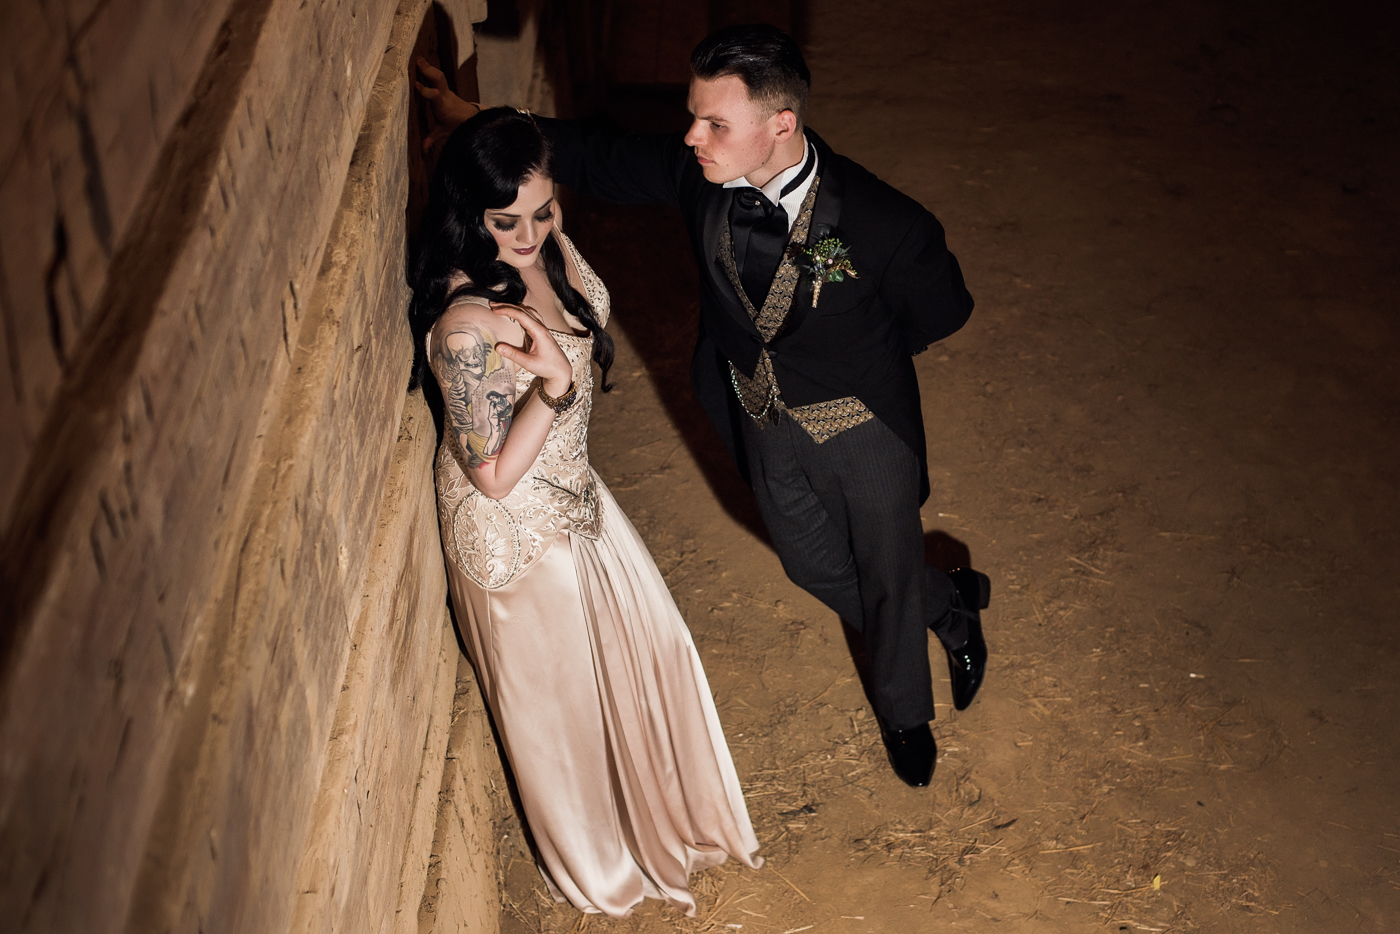 and-how-imaging-gothic-inspired-styled-shoot-gothic-wedding-1920s-theme-wedding-1920s-inspired-styled-shoot-halloween-styled-shoot-gothic-inspired-wedding-58